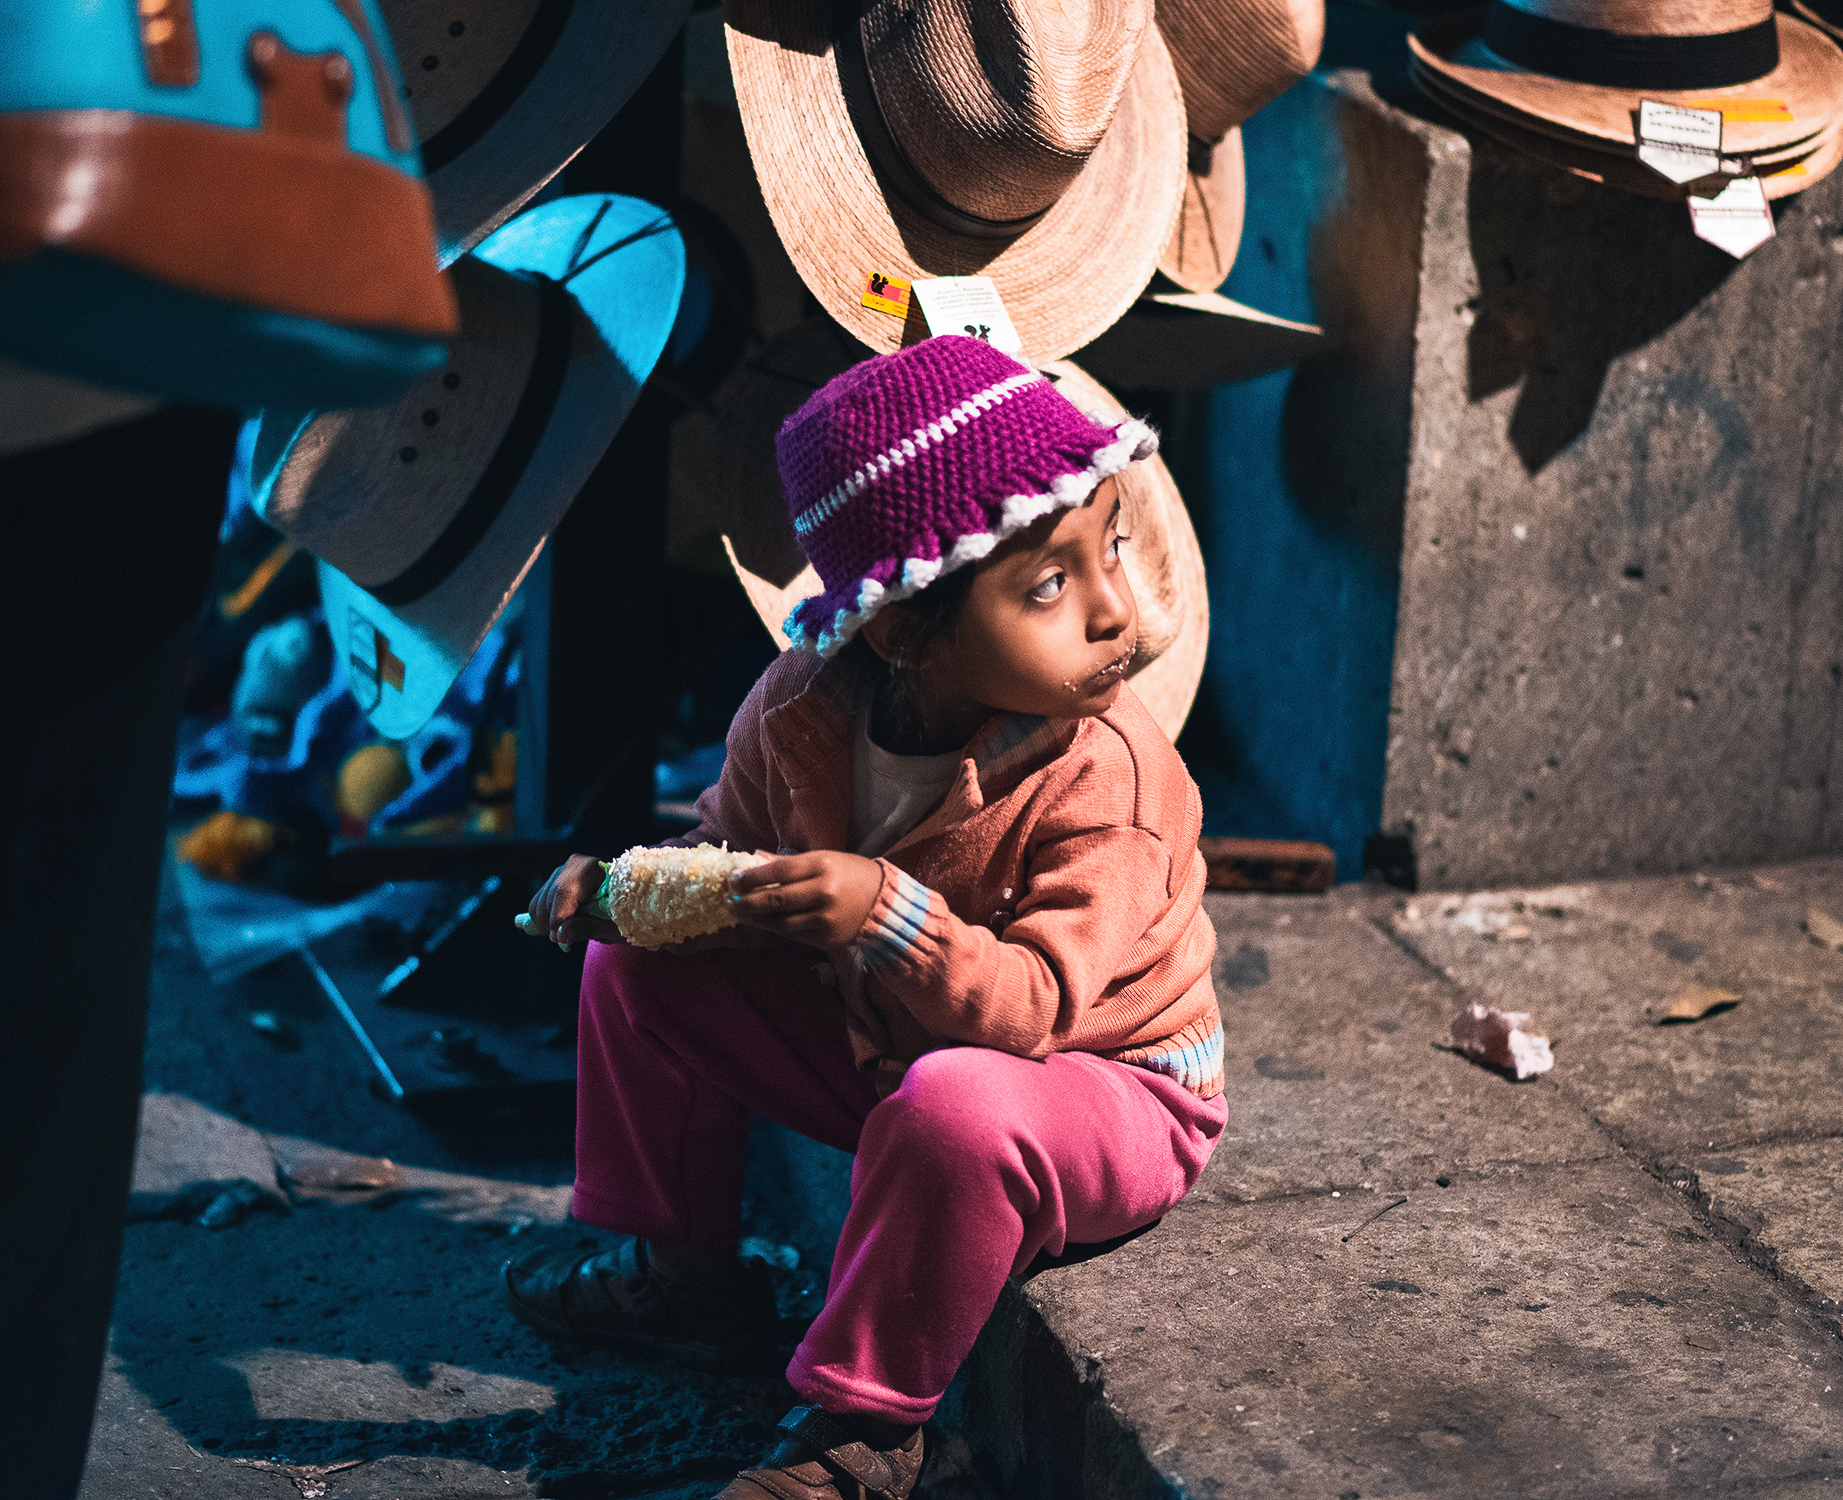 girl-eating-corn_oaxaca_crockett_2015_5180.jpg